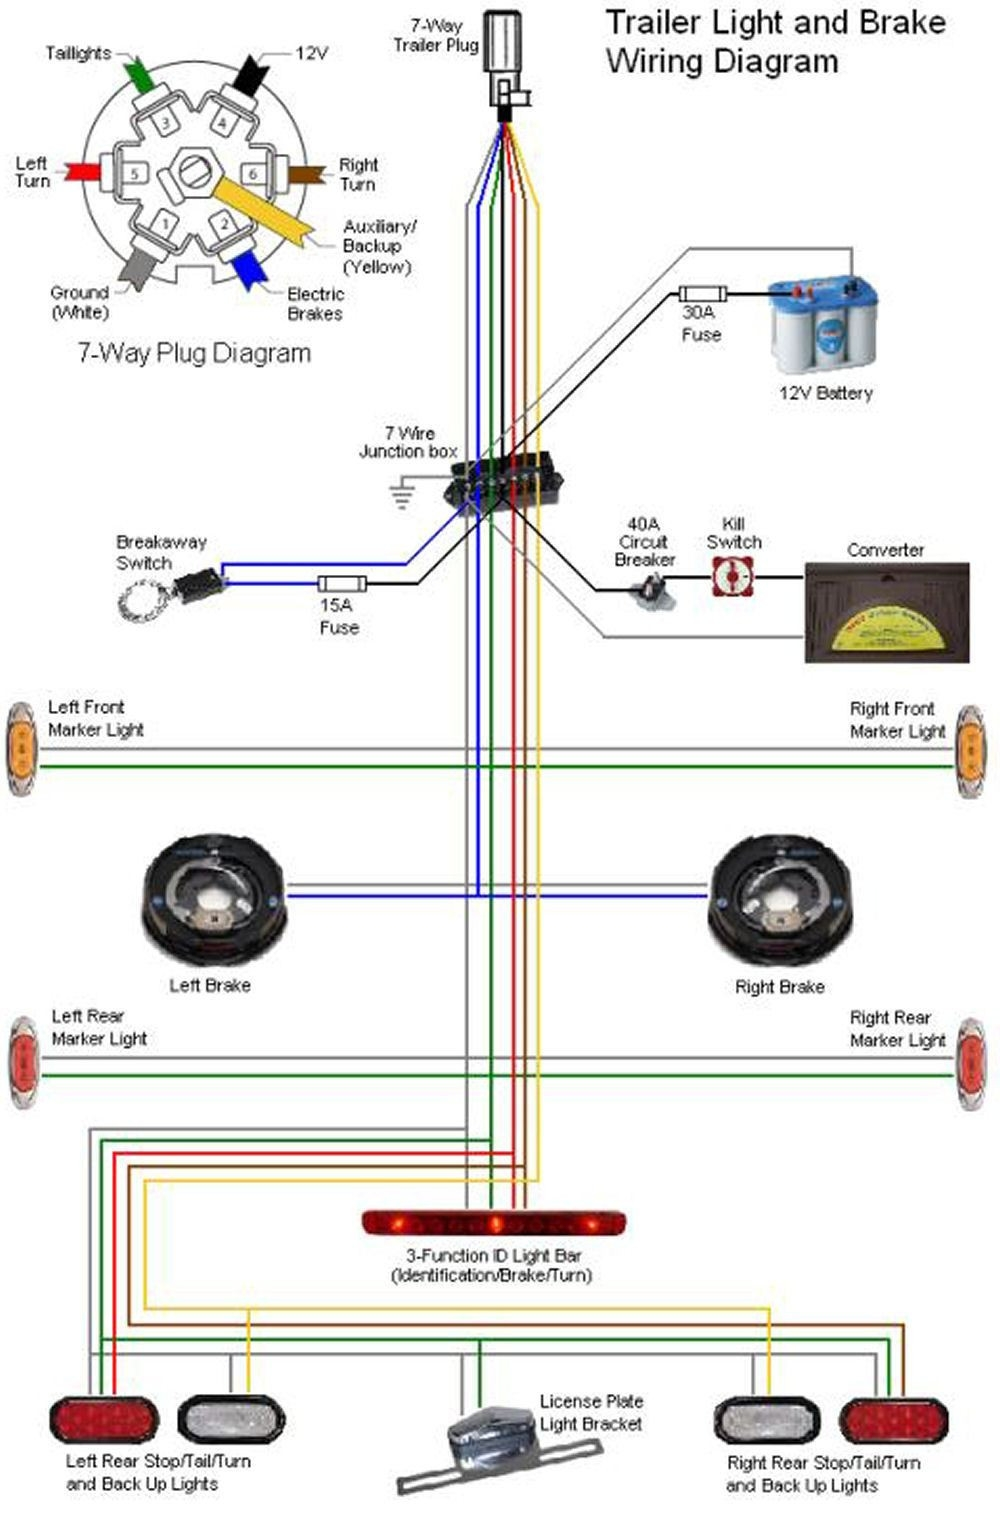 Trailer Wiring Schematic 7 Way